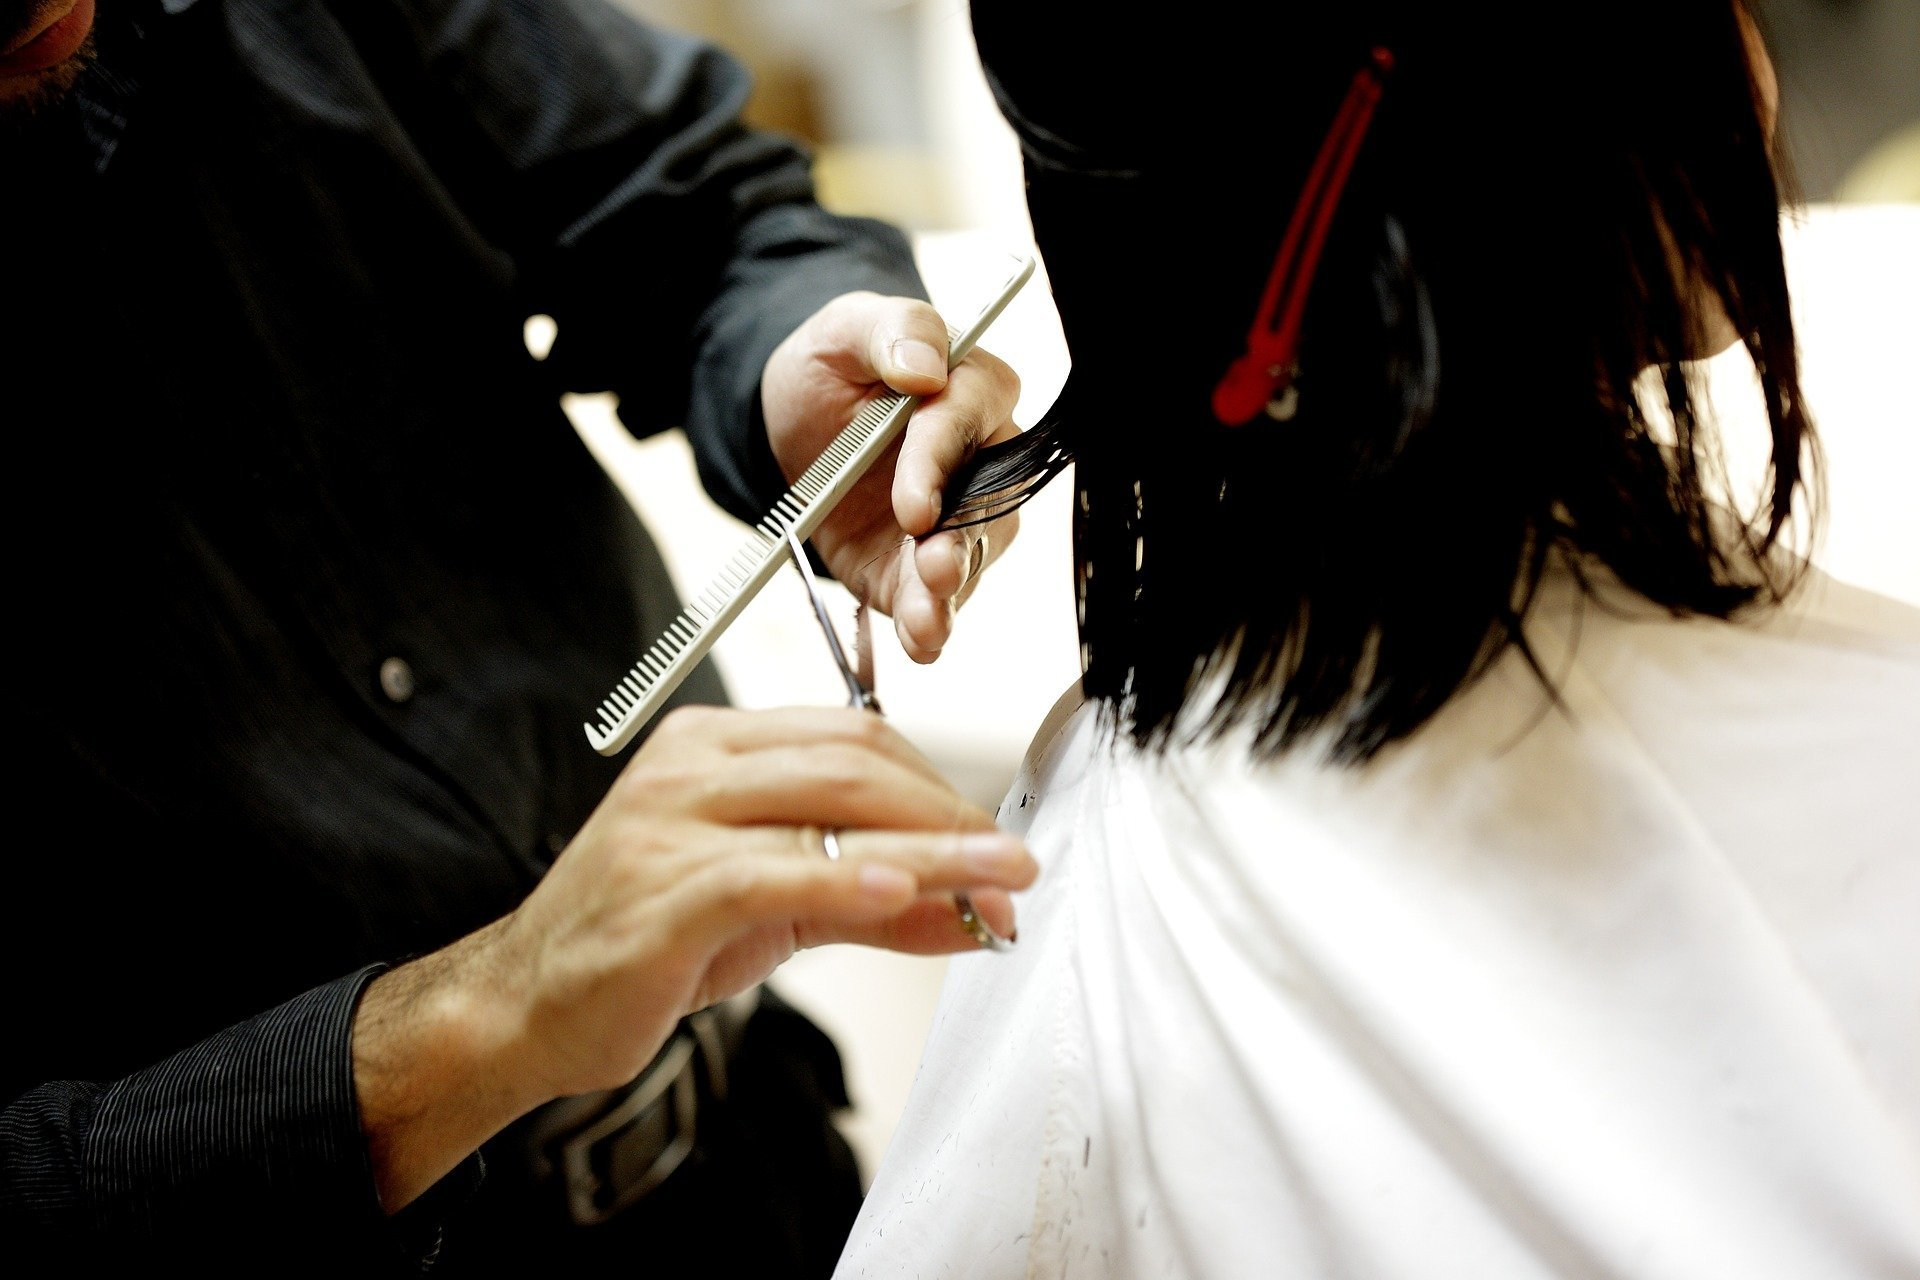 Hairdressers and barbershops are reopening on April 12